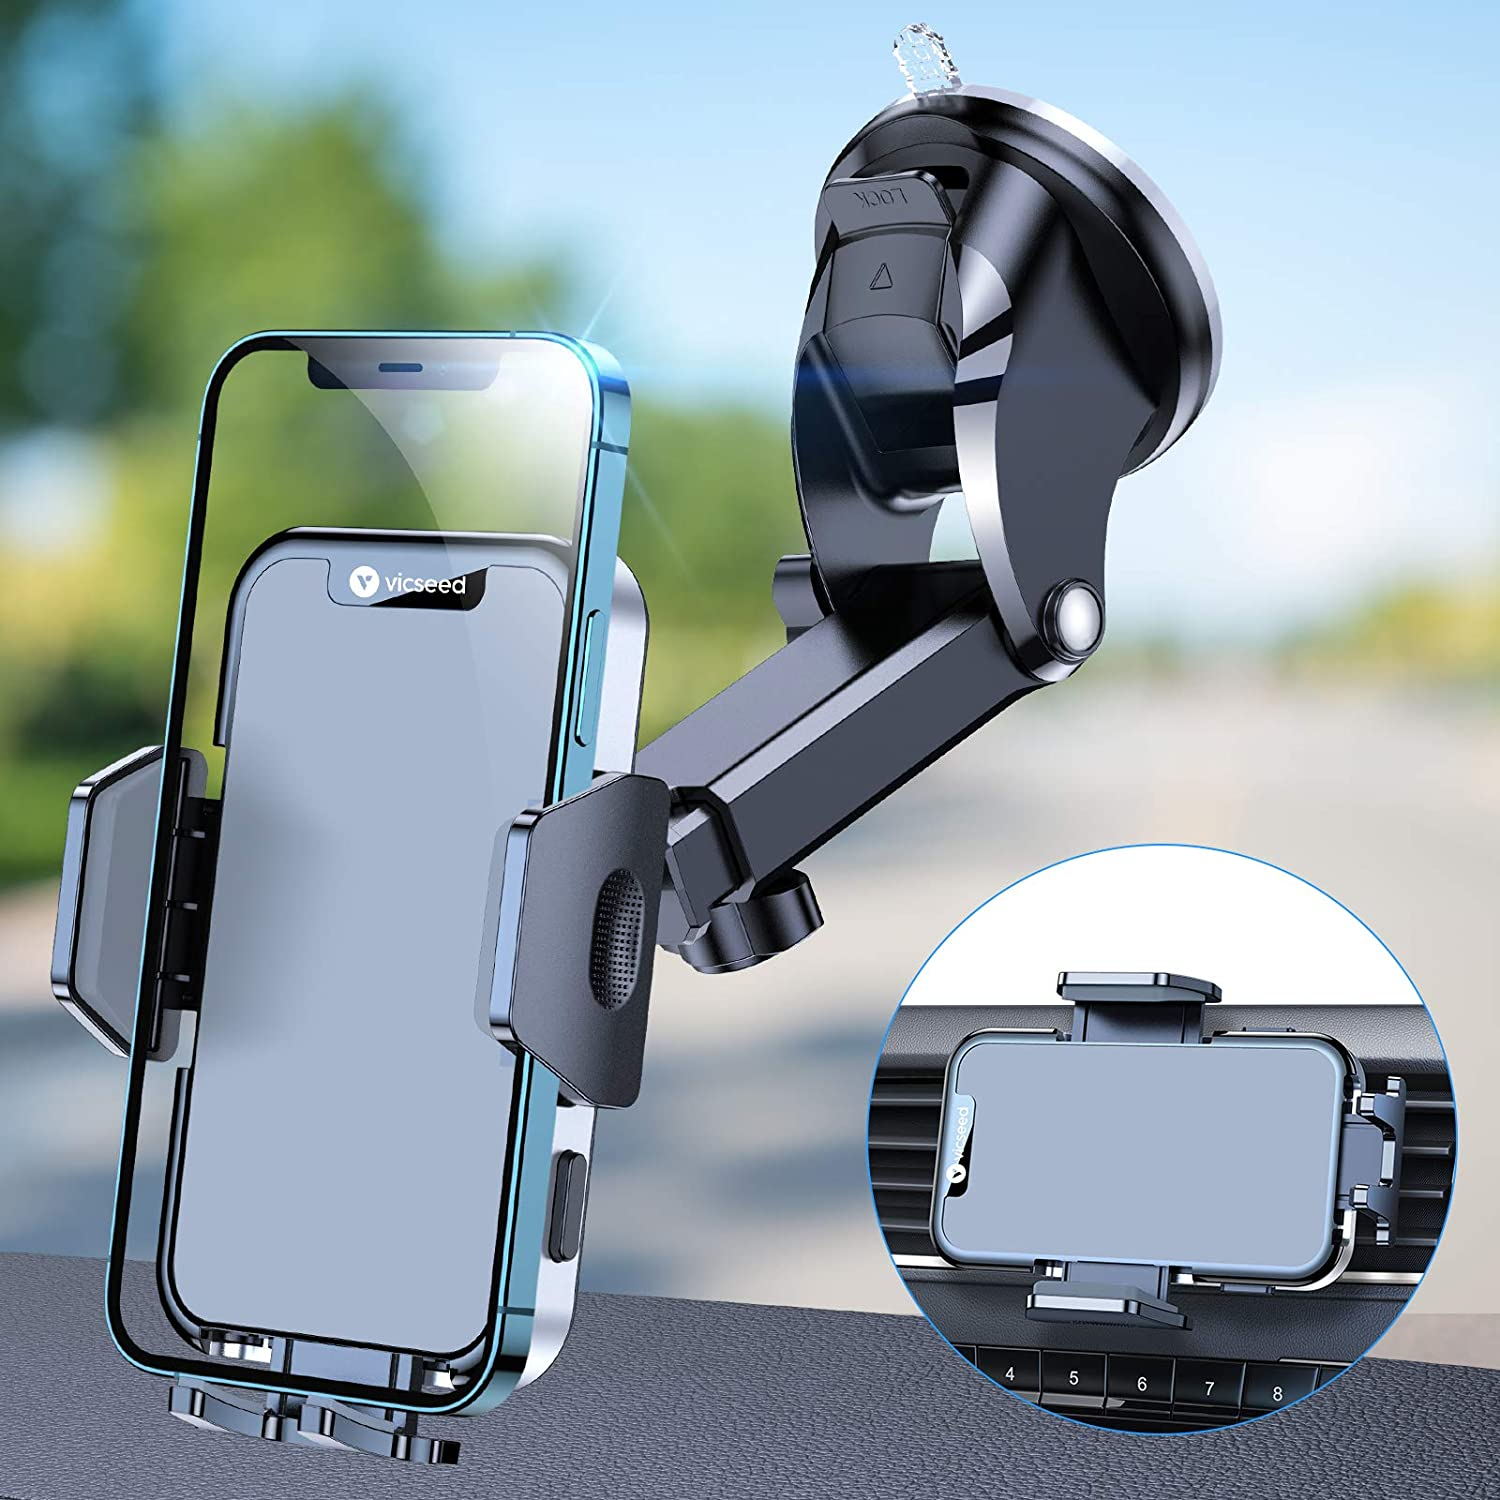 VICSEED Car Phone Holder Mount [Super Powerful Suction Cup] Hands Free Cell Phone Holder for Cars Rotatable Universal Dashboard Windshield Air Vent Vehicle Phone Mounts Compatible with All Phones